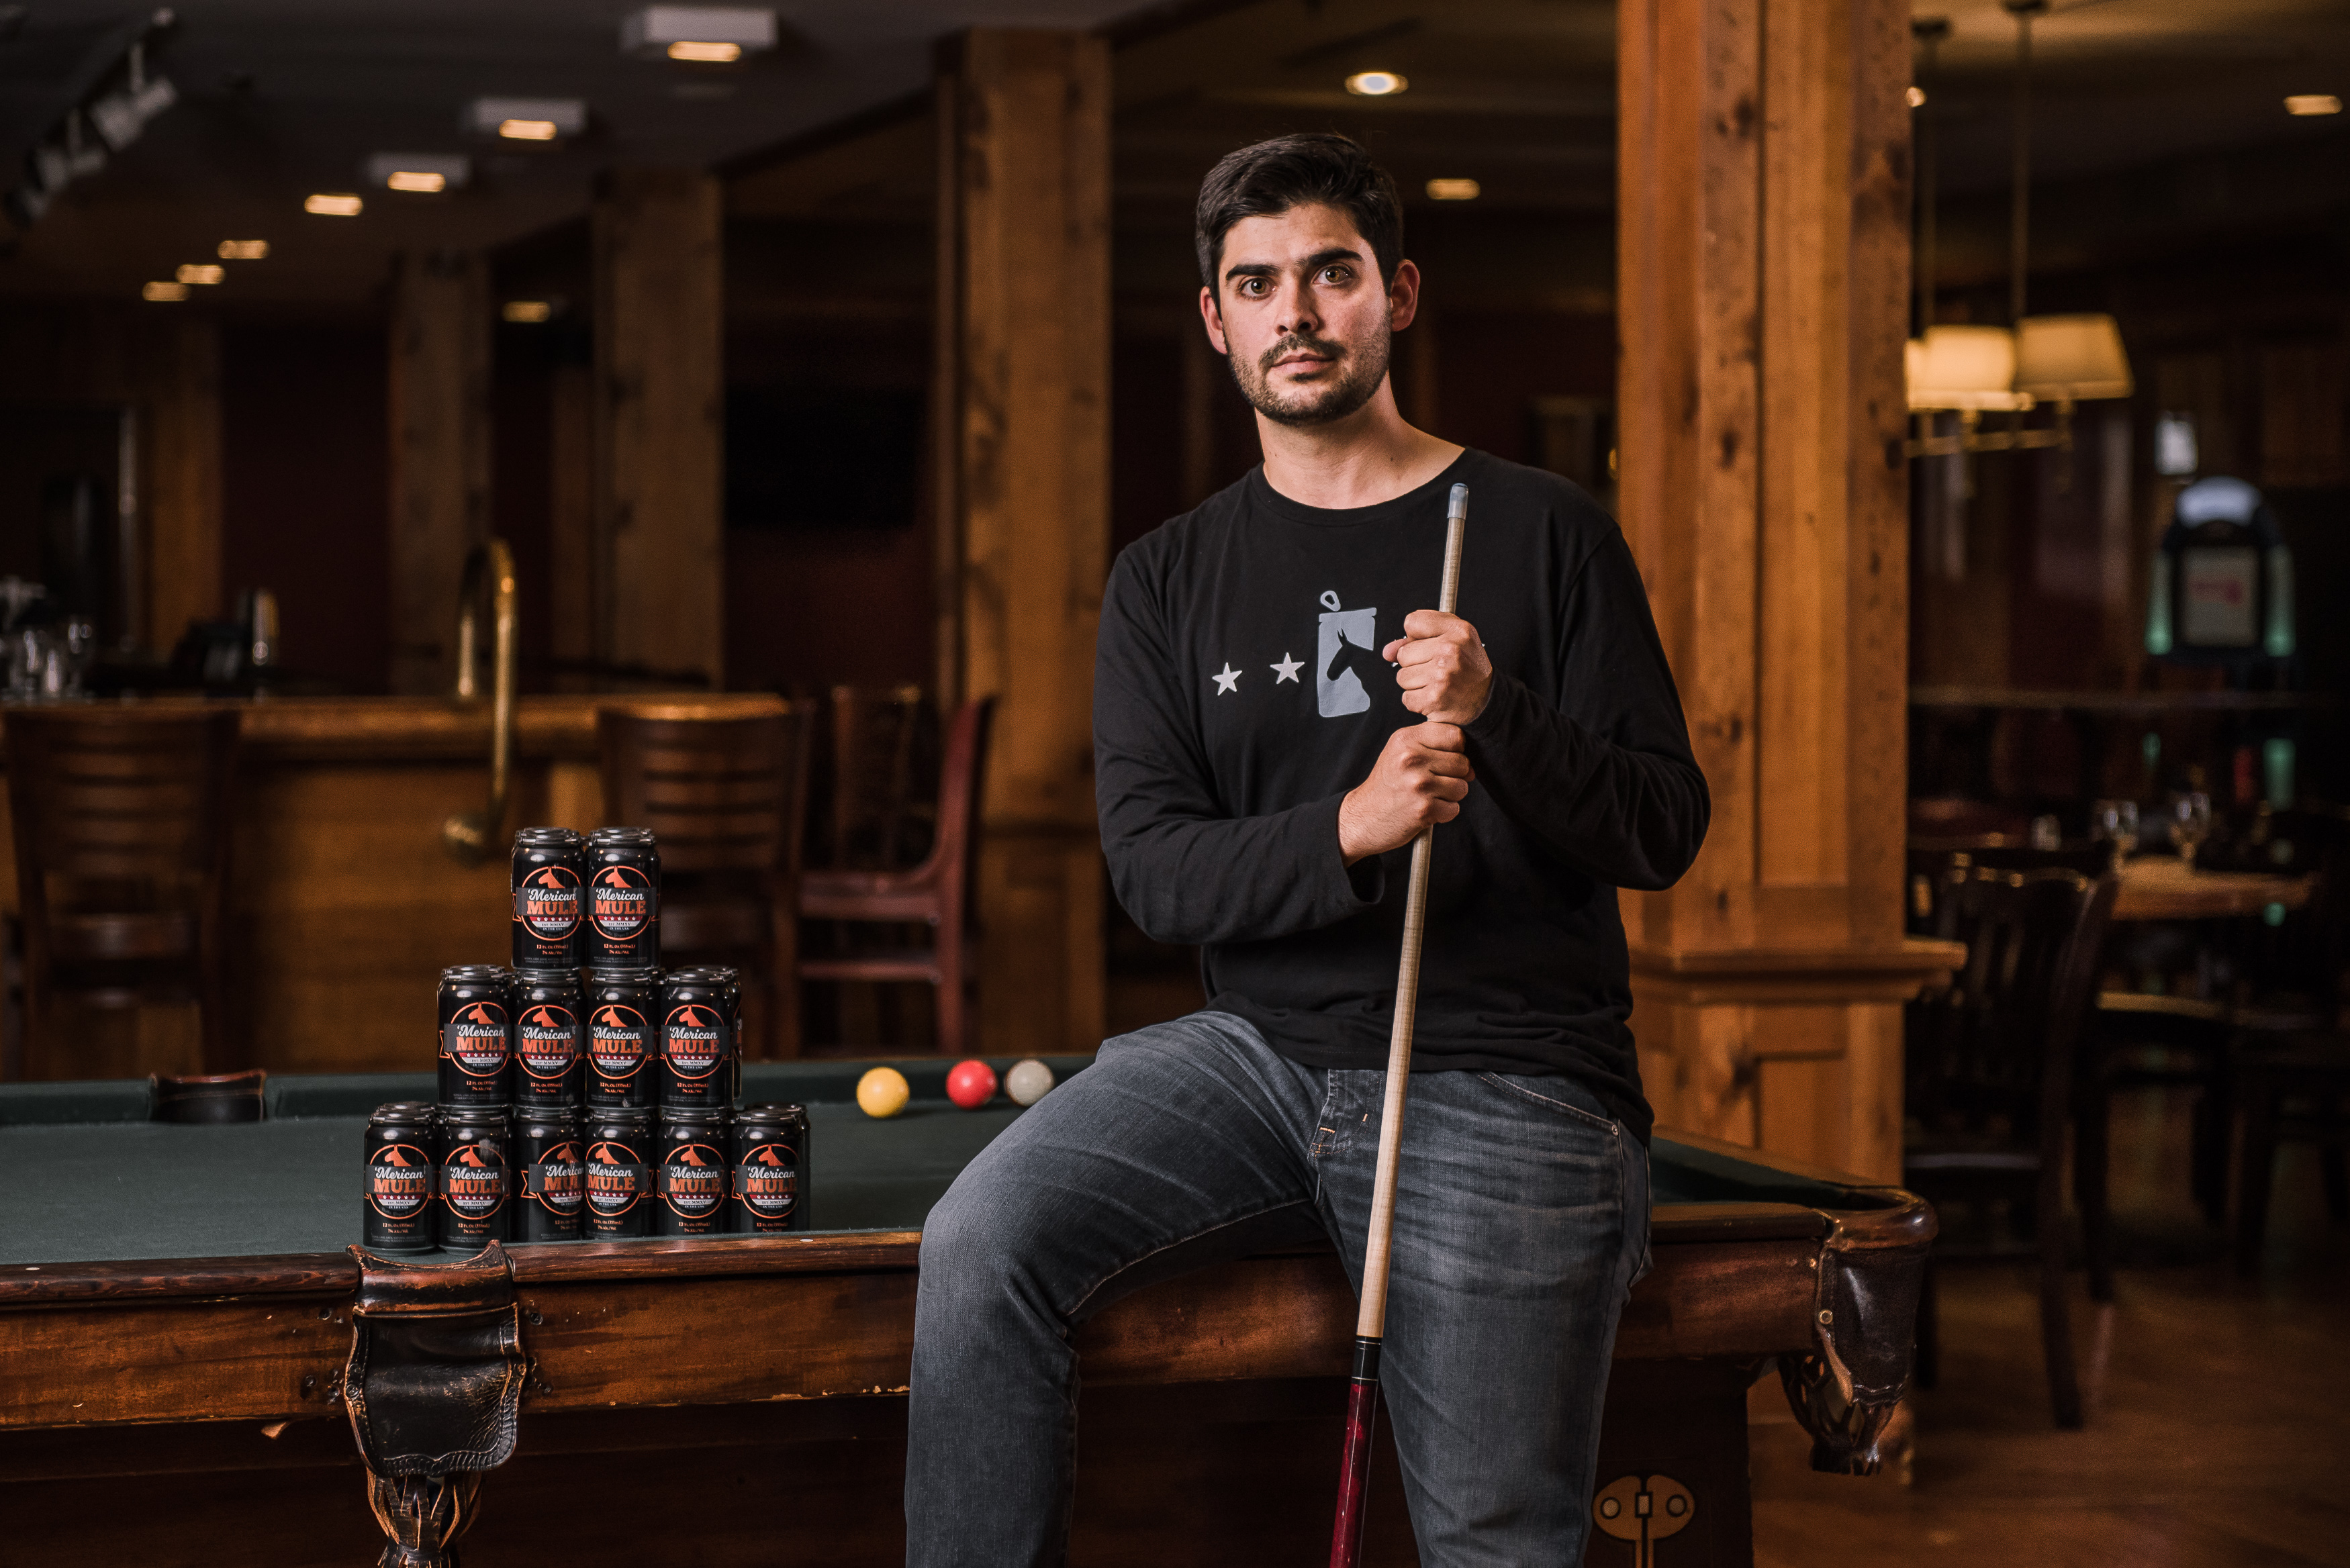 UConn graduate Dean Mahoney, founder of the 'Merican Mule cocktail company, posing with a pool cue.